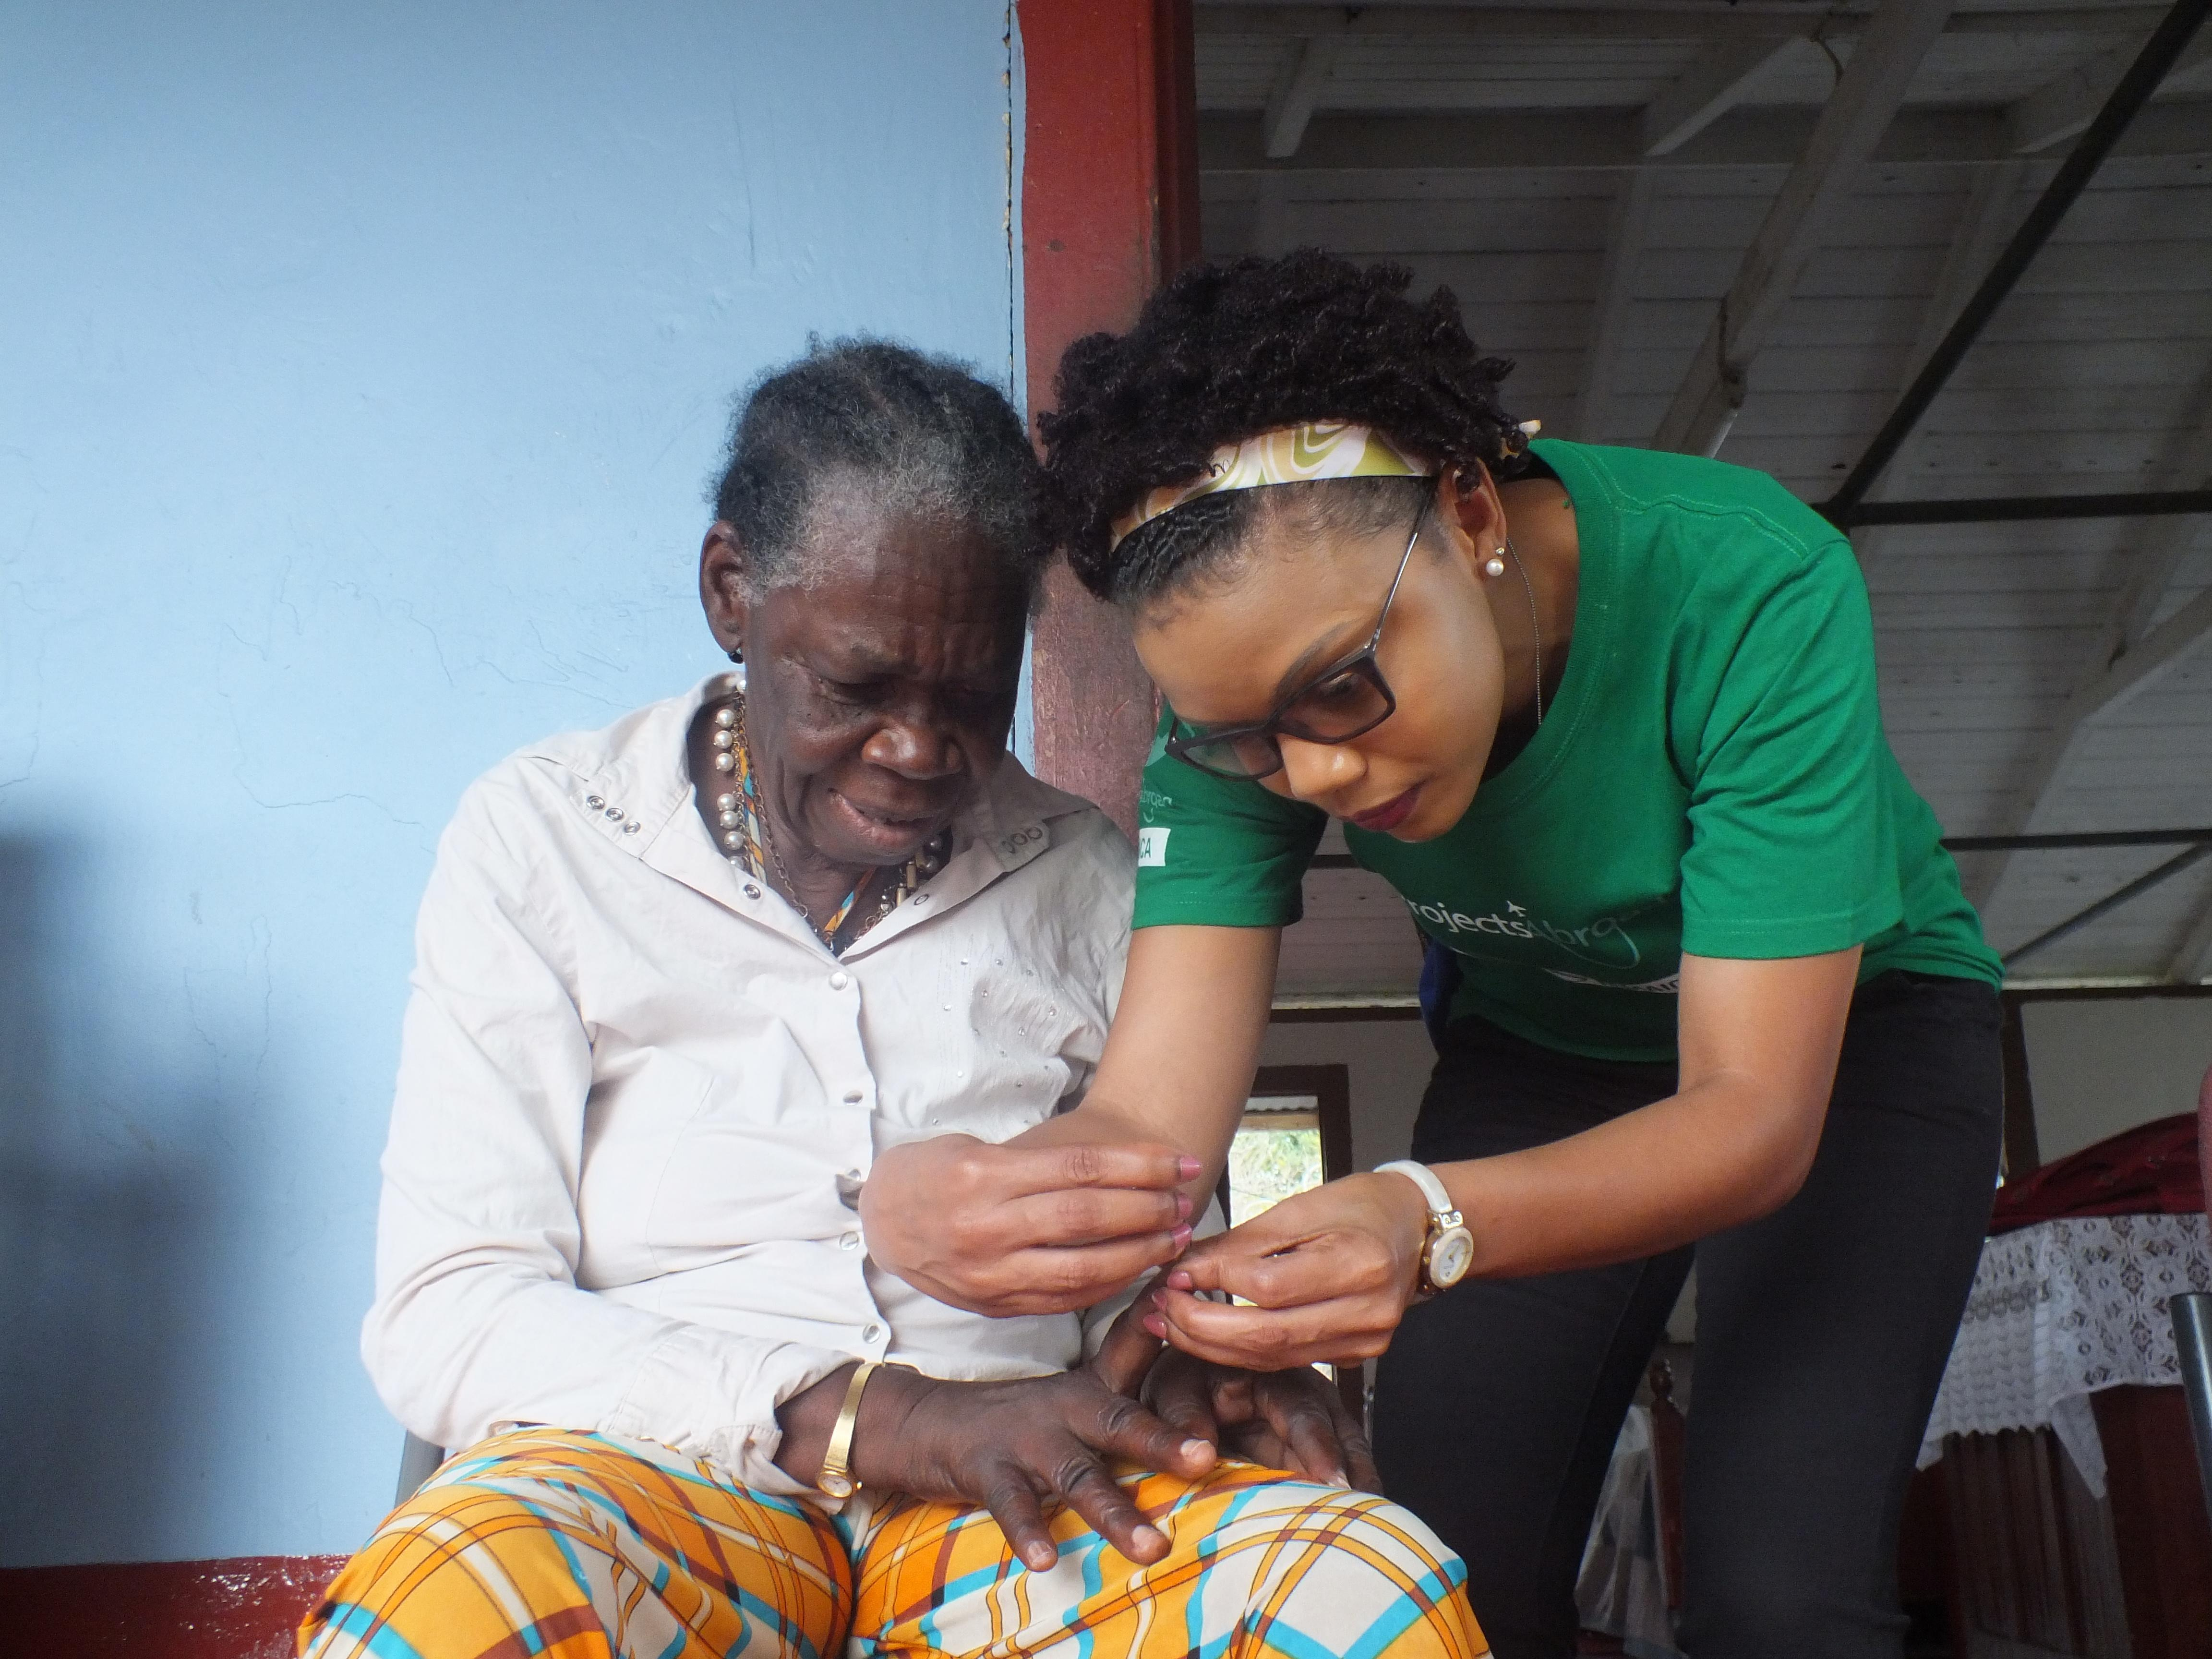 Projects Abroad volunteer helps an elderly woman with personal care during an outreach in Jamaica.